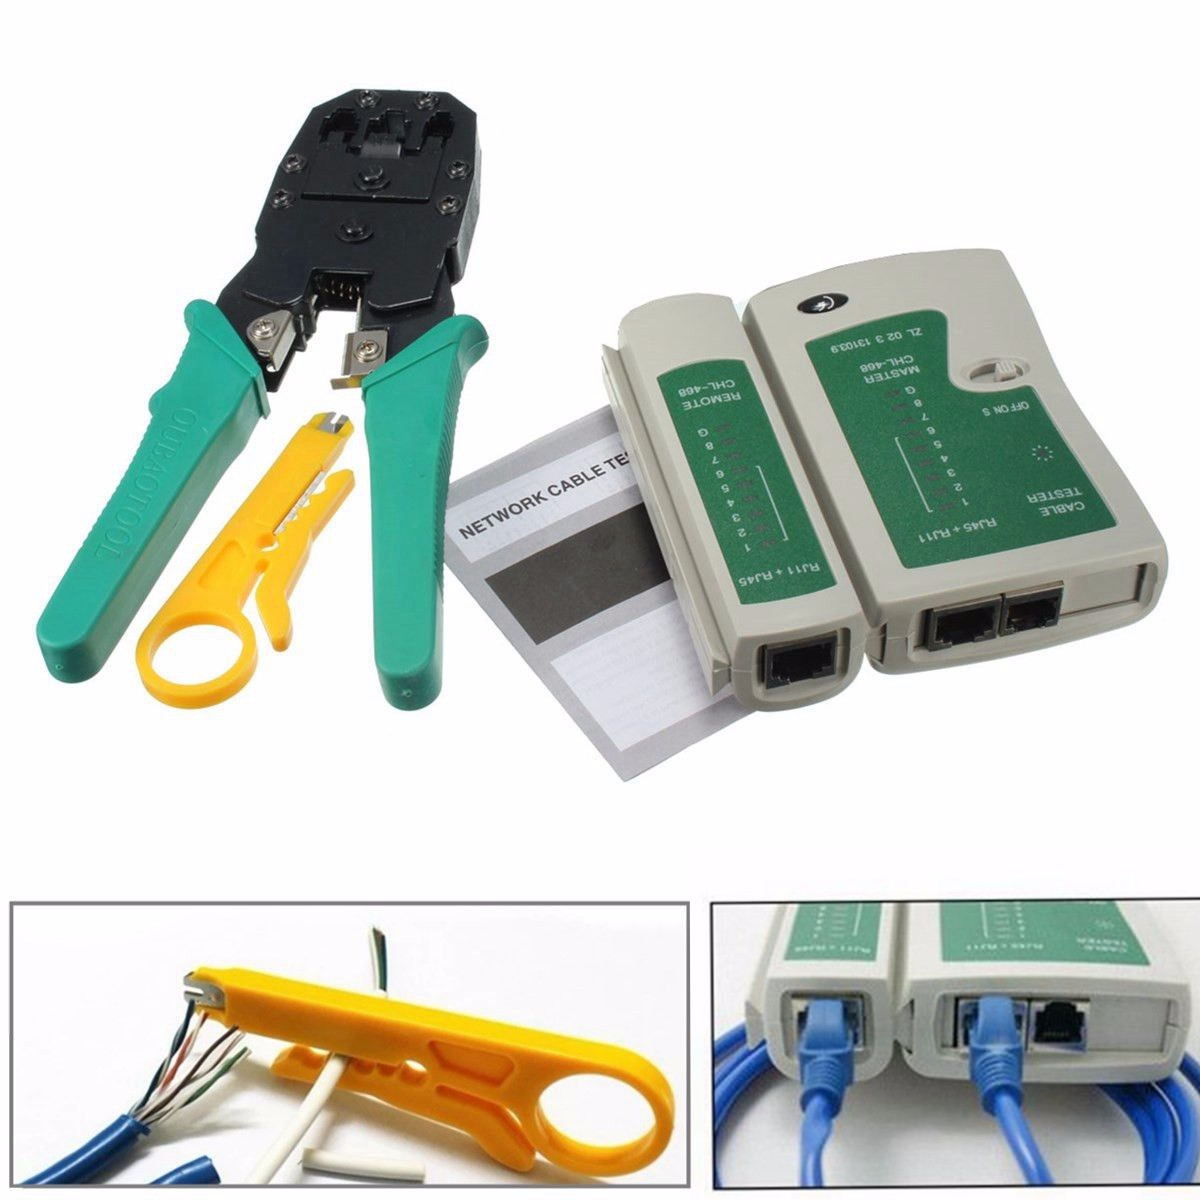 1PC Doersupp Cable Crimper RJ45 RJ11 RJ12 CAT5 LAN Network Tool Kit Cable Tester Stripper Crimper Plier DC 9V Magnatic Steel1PC Doersupp Cable Crimper RJ45 RJ11 RJ12 CAT5 LAN Network Tool Kit Cable Tester Stripper Crimper Plier DC 9V Magnatic Steel